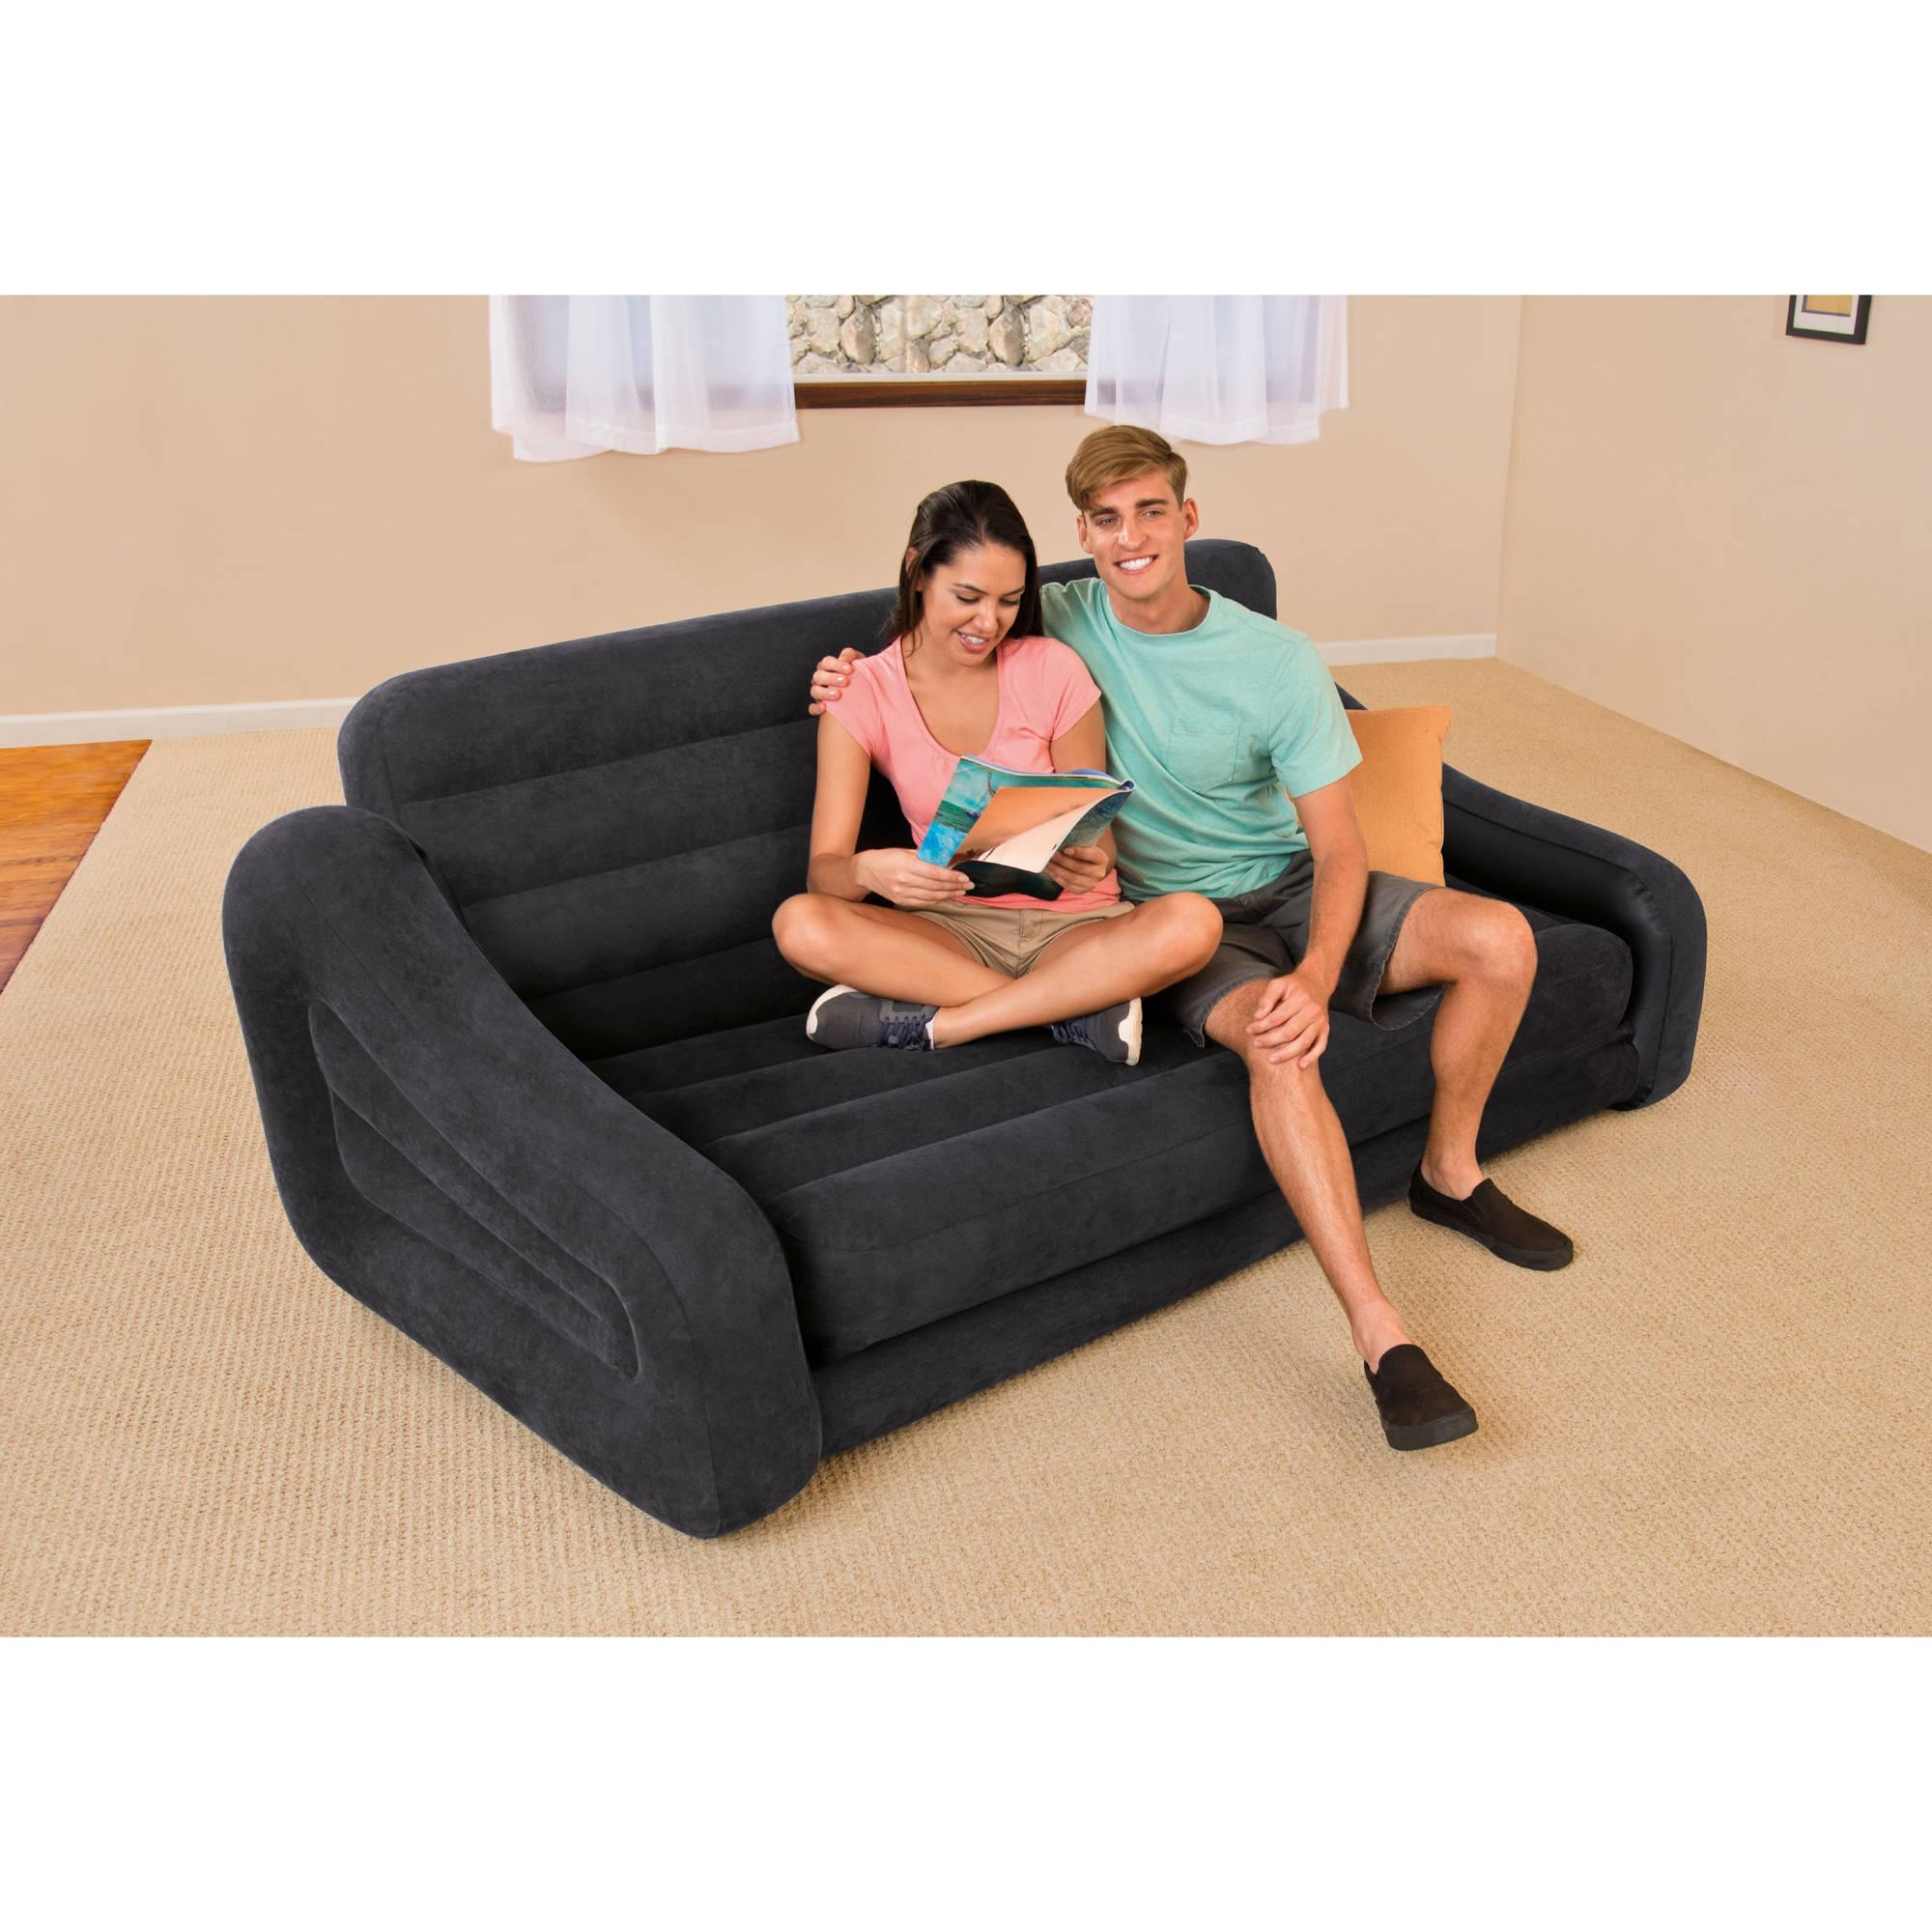 Intex Queen Inflatable Pull Out Sofa Bed – Walmart Regarding Intex Inflatable Pull Out Sofas (Image 15 of 20)